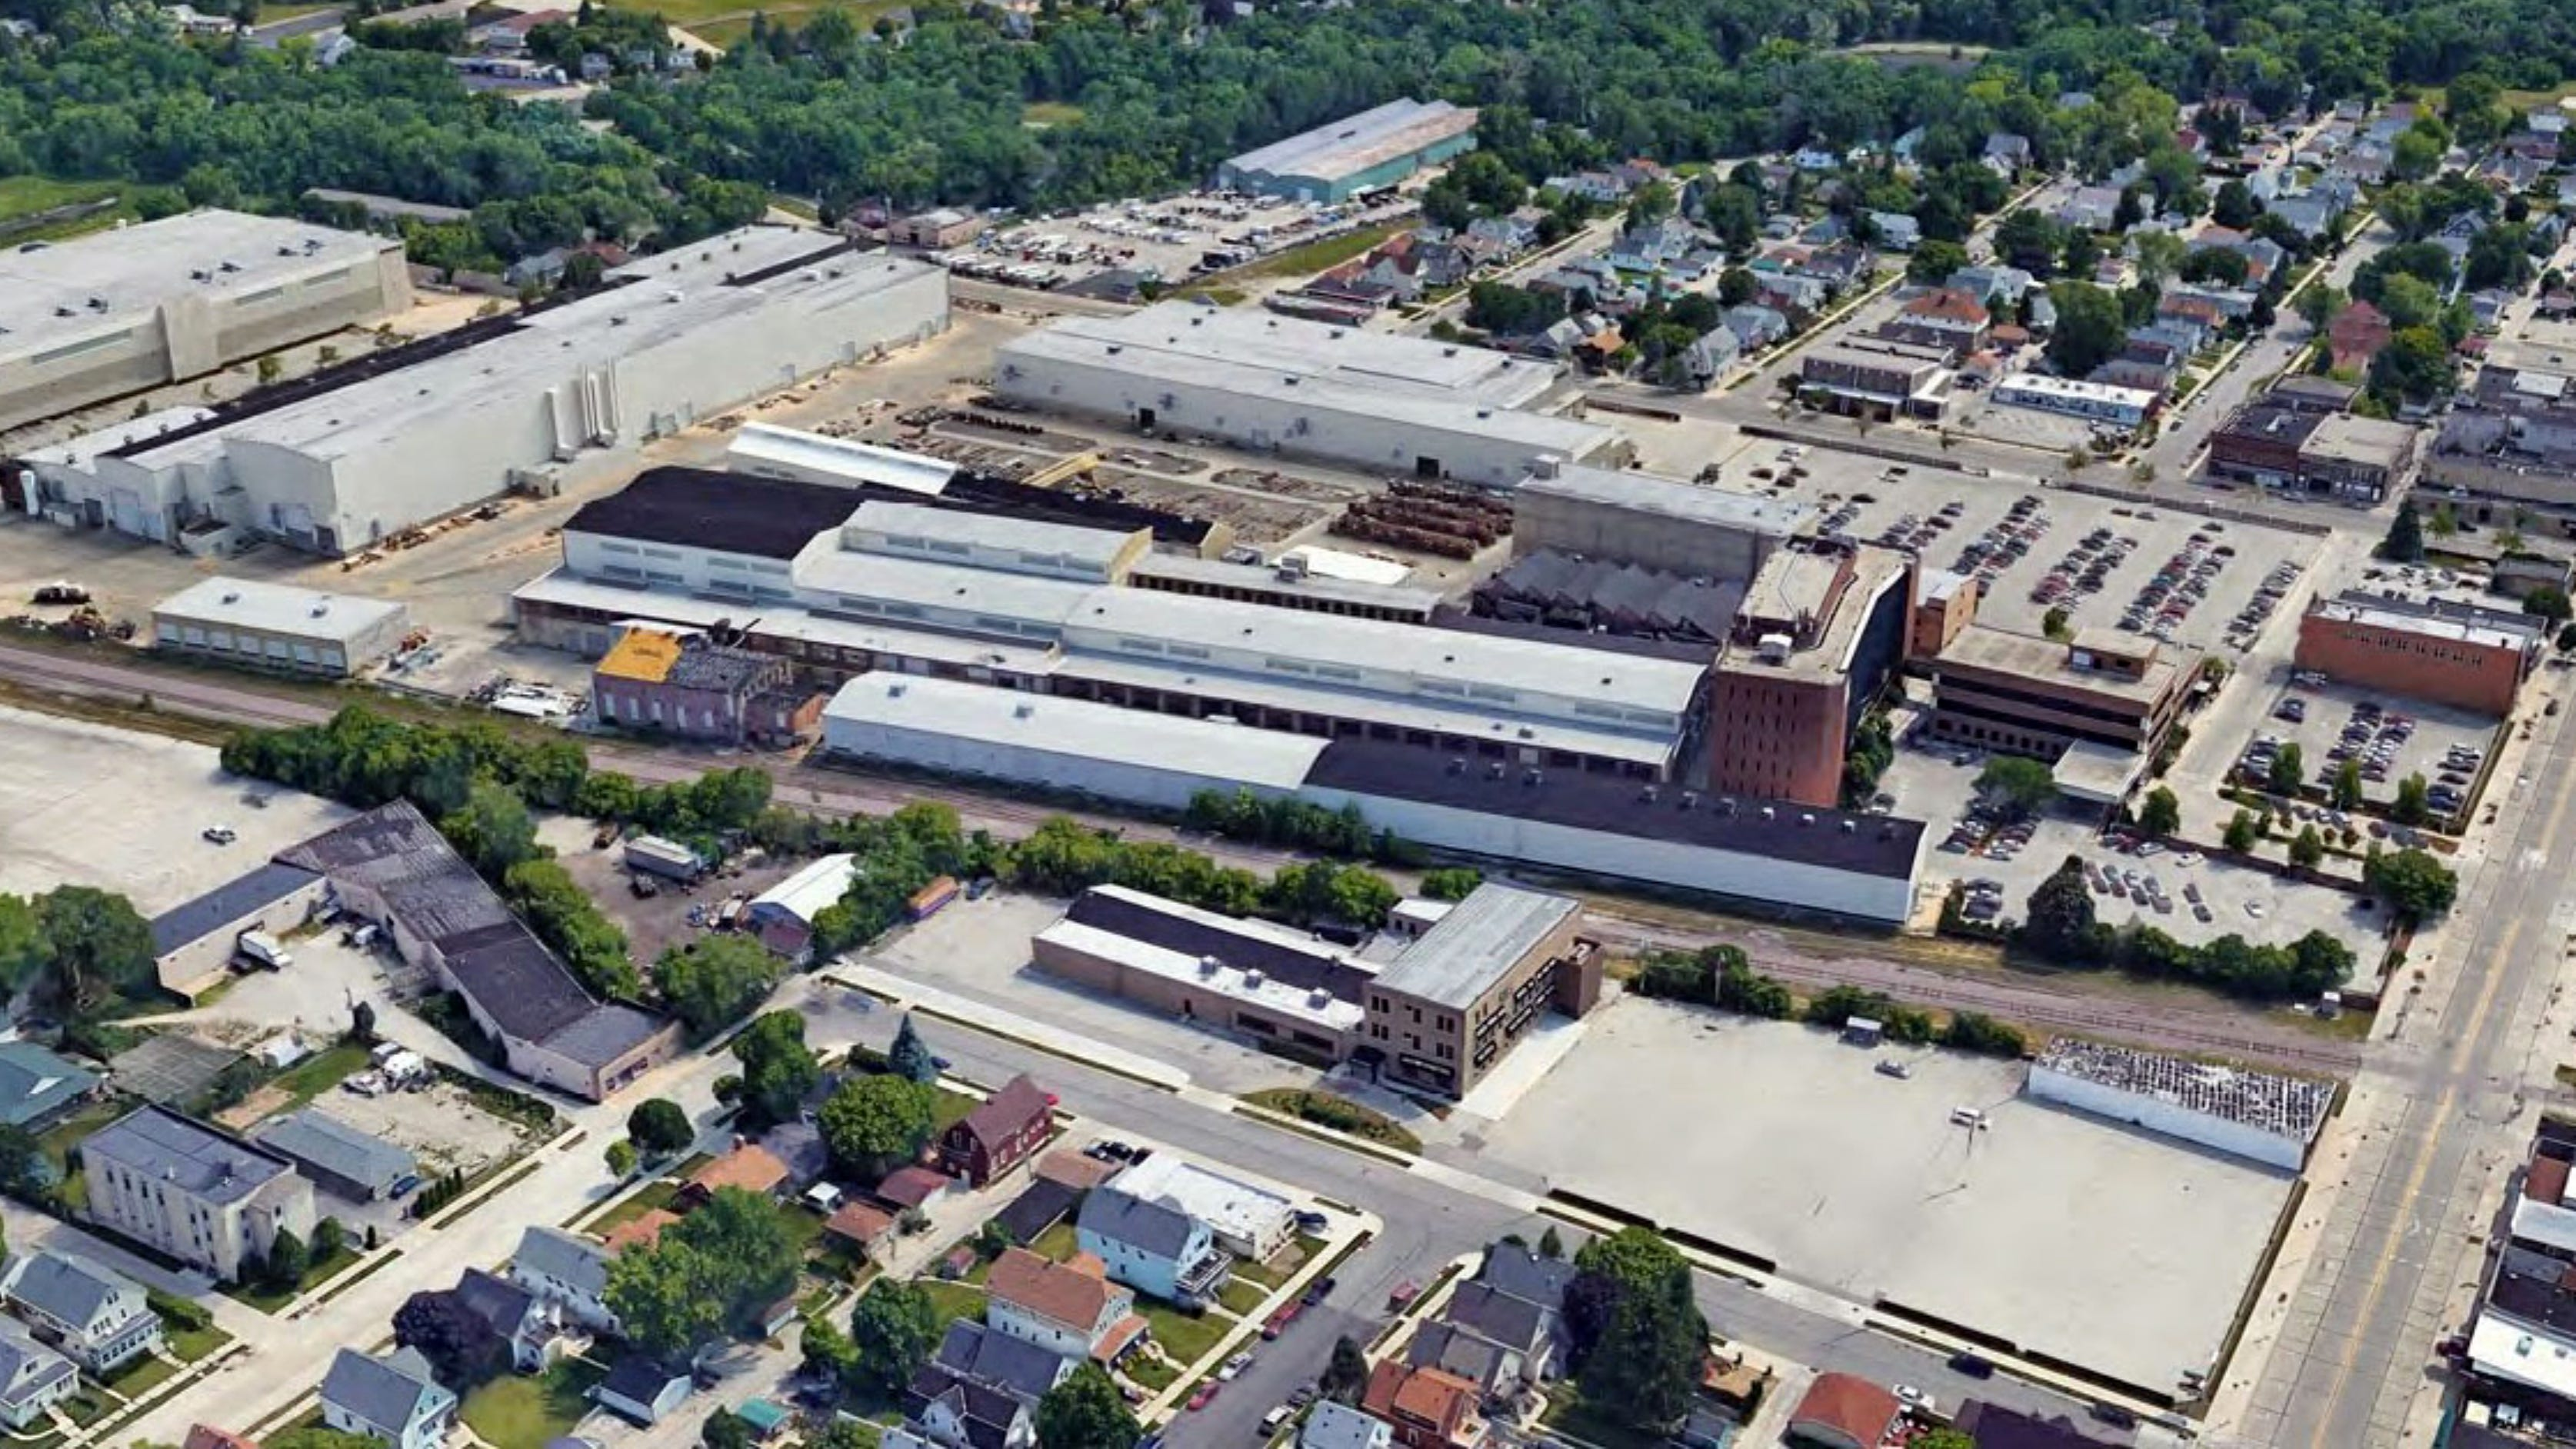 South Milwaukee's former long-time Bucyrus/Caterpillar buildings begin redevelopment for new uses